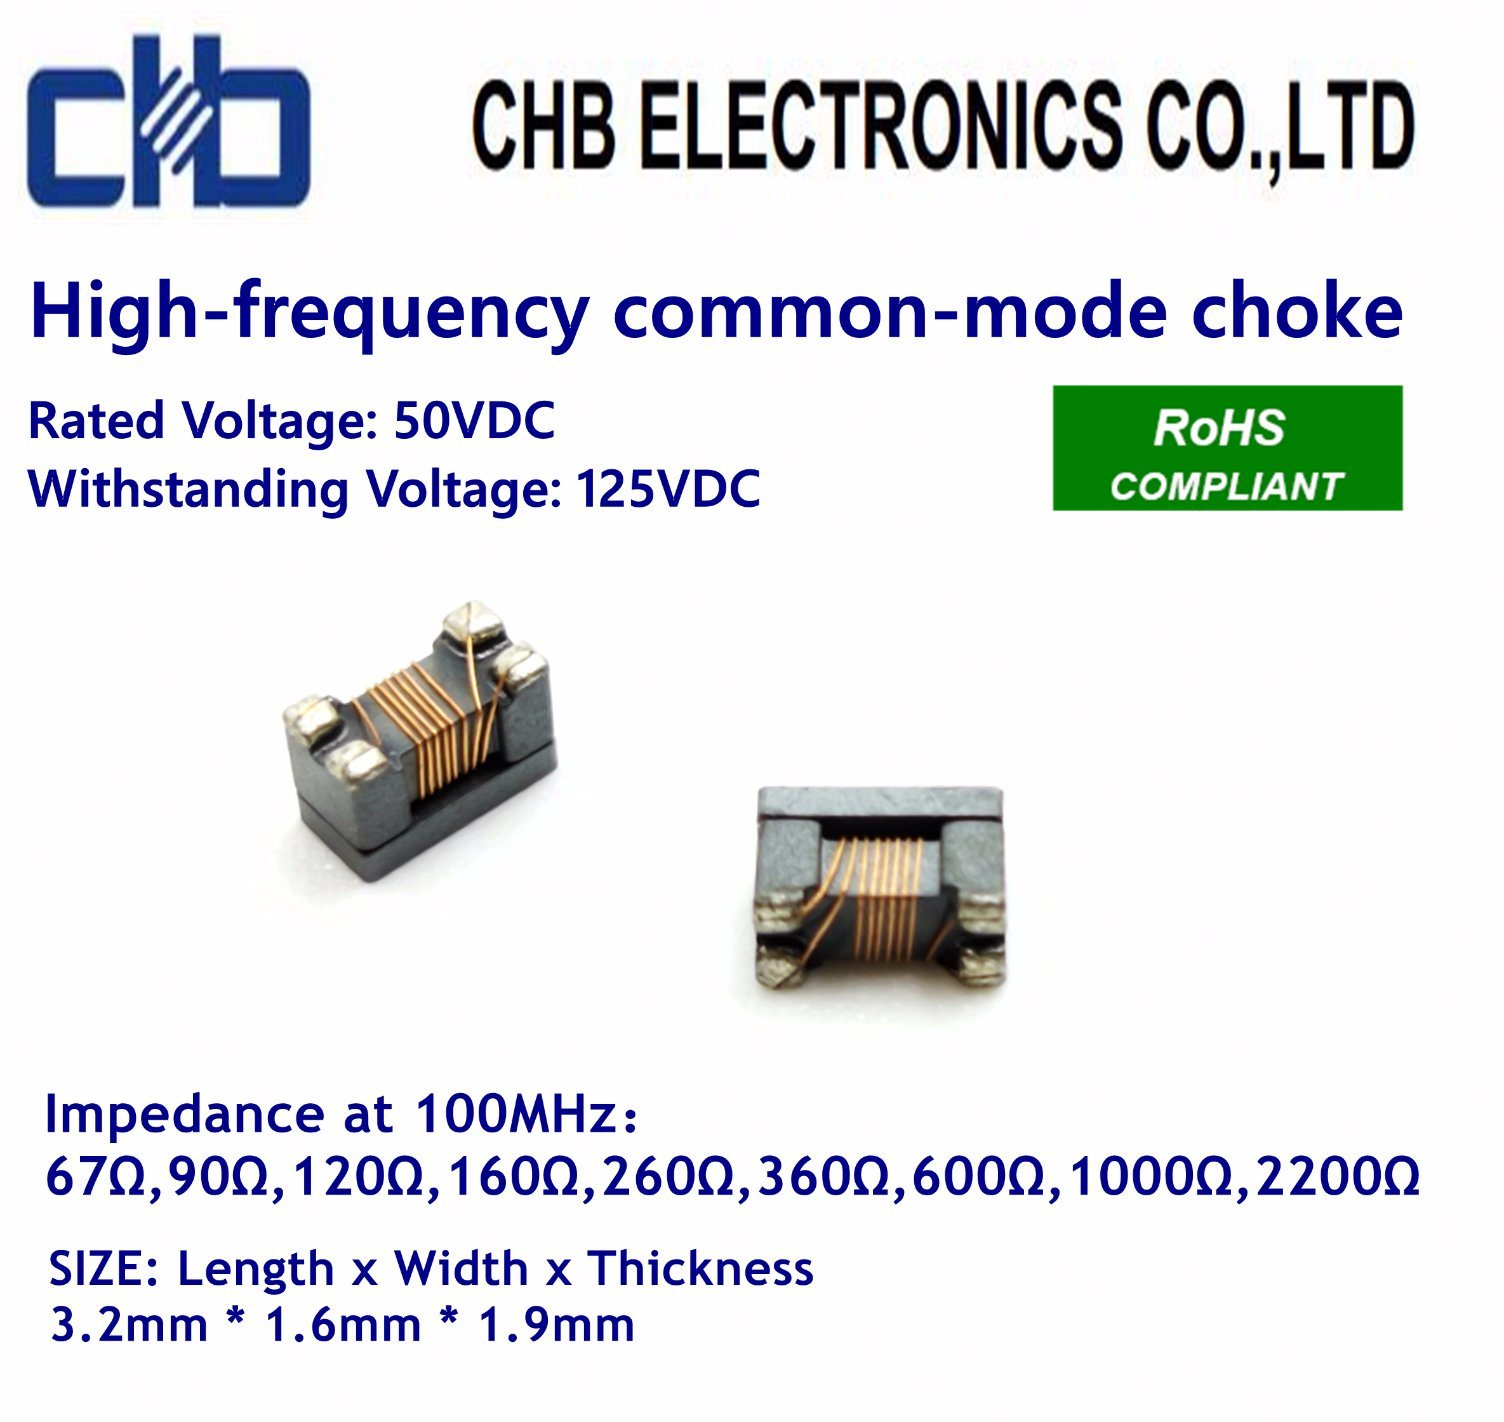 High-Frequency Common-Mode Choke 3216 (1206) for USB2.0/IEEE1394 Signal Line, Impedance~600ohm at 100MHz, Size: 3.2mm * 1.6mm * 1.9mm